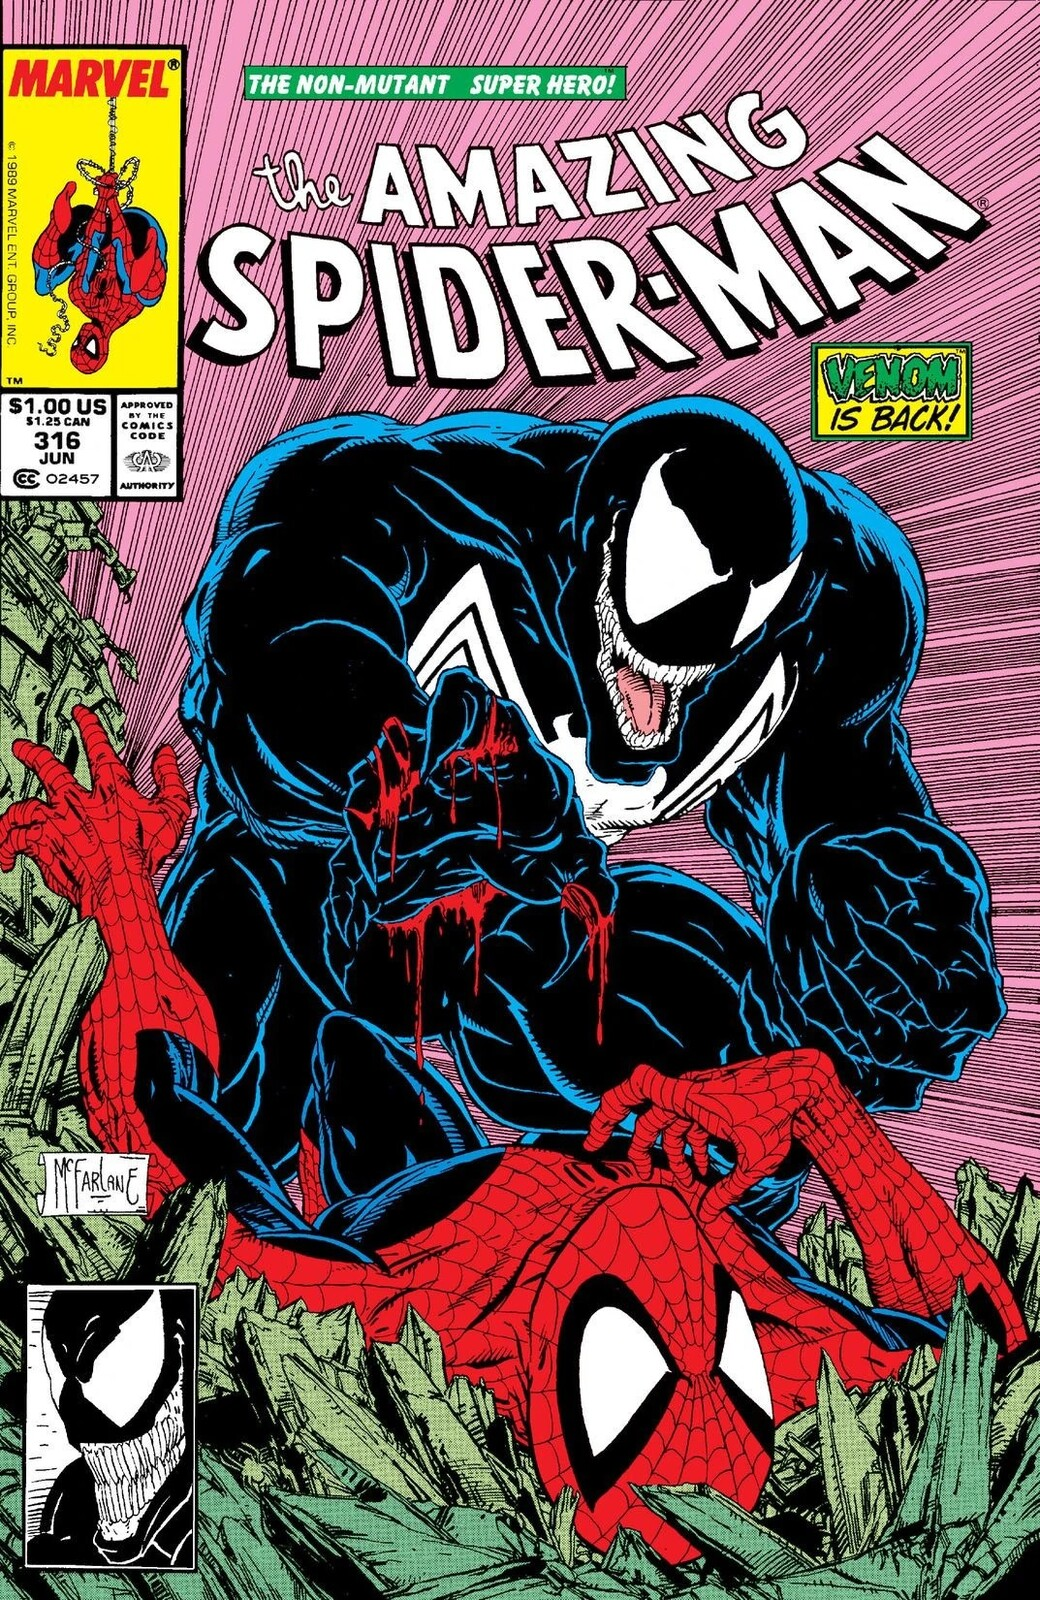 After Todd Mcfarlane's ASM #316